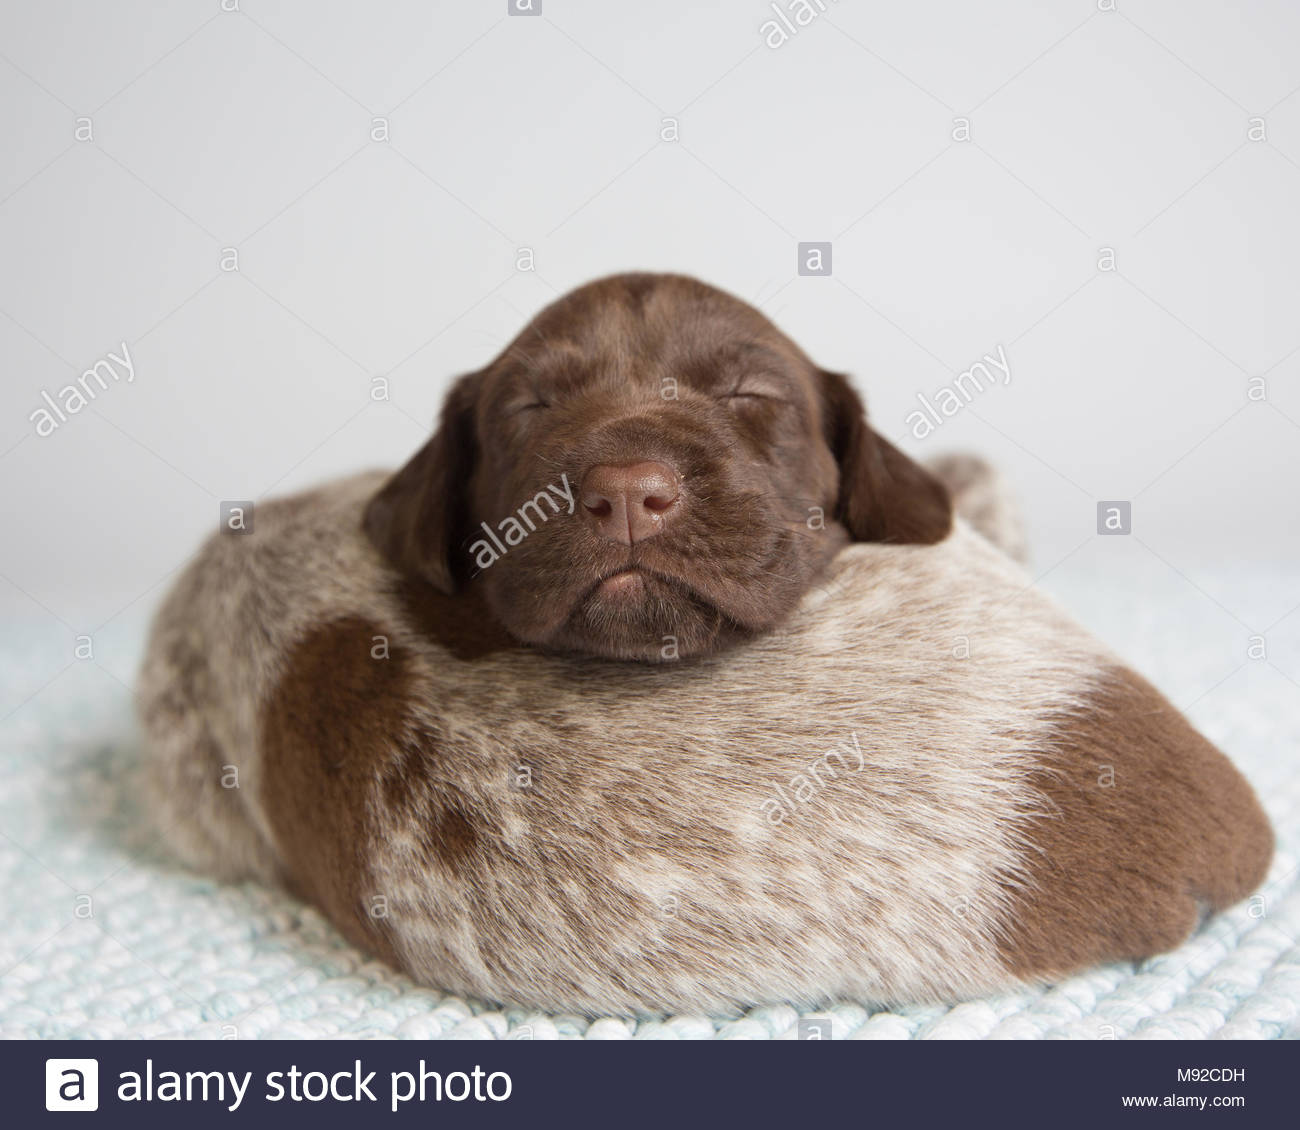 Two german shorthaired pointer puppies sleeping on top of each other in studio against white background - Stock Image